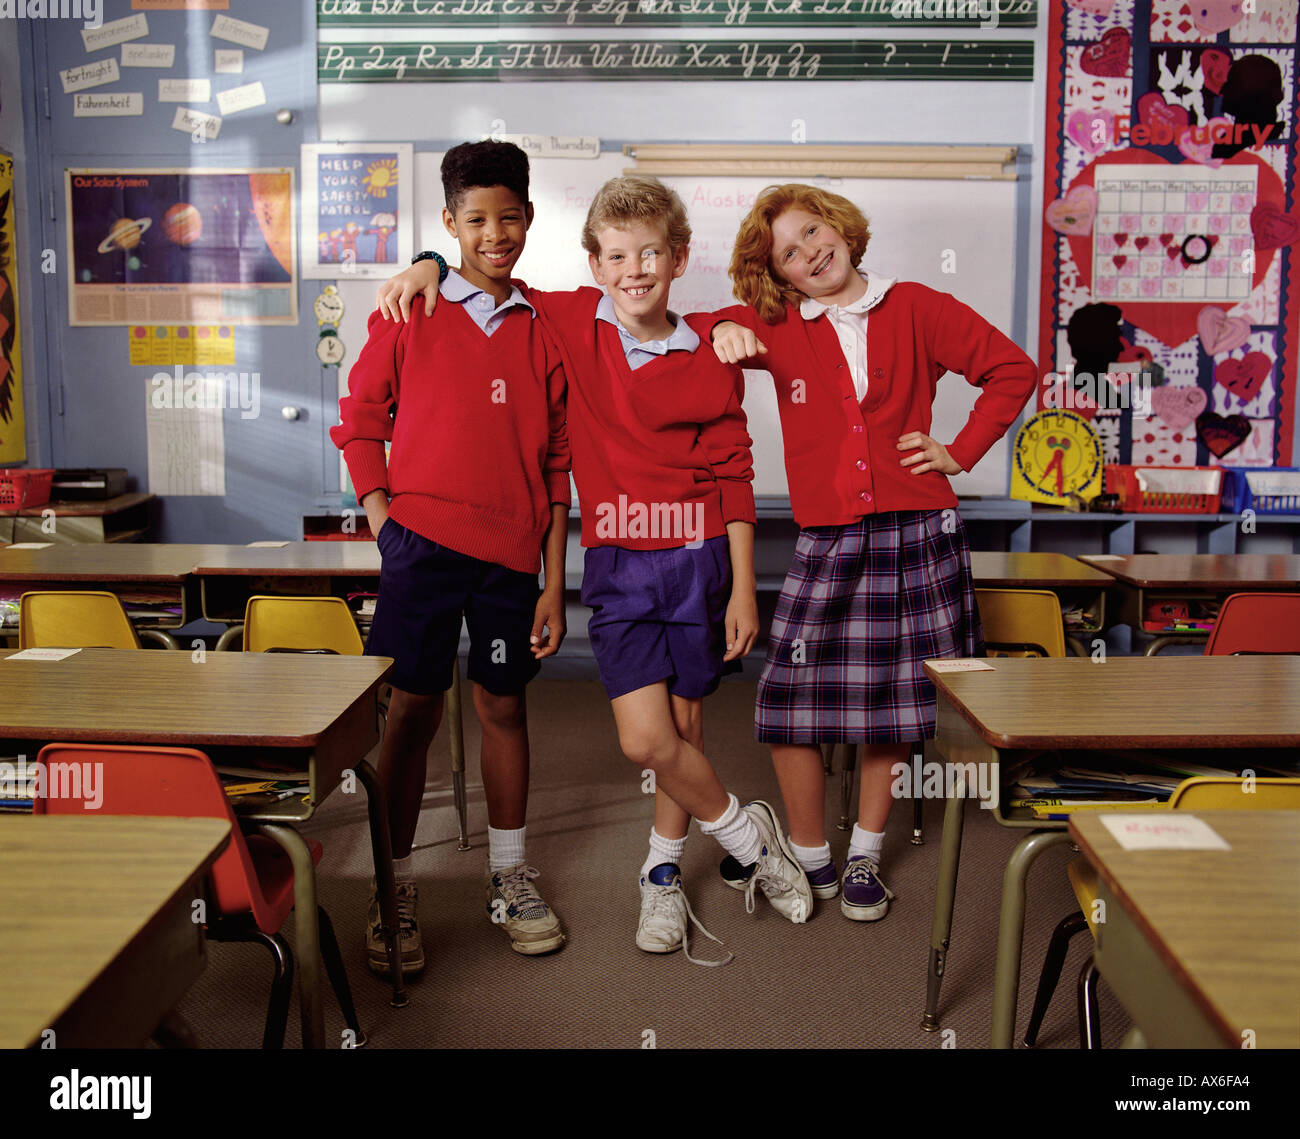 Three young elementary schoolchildren wearing private school